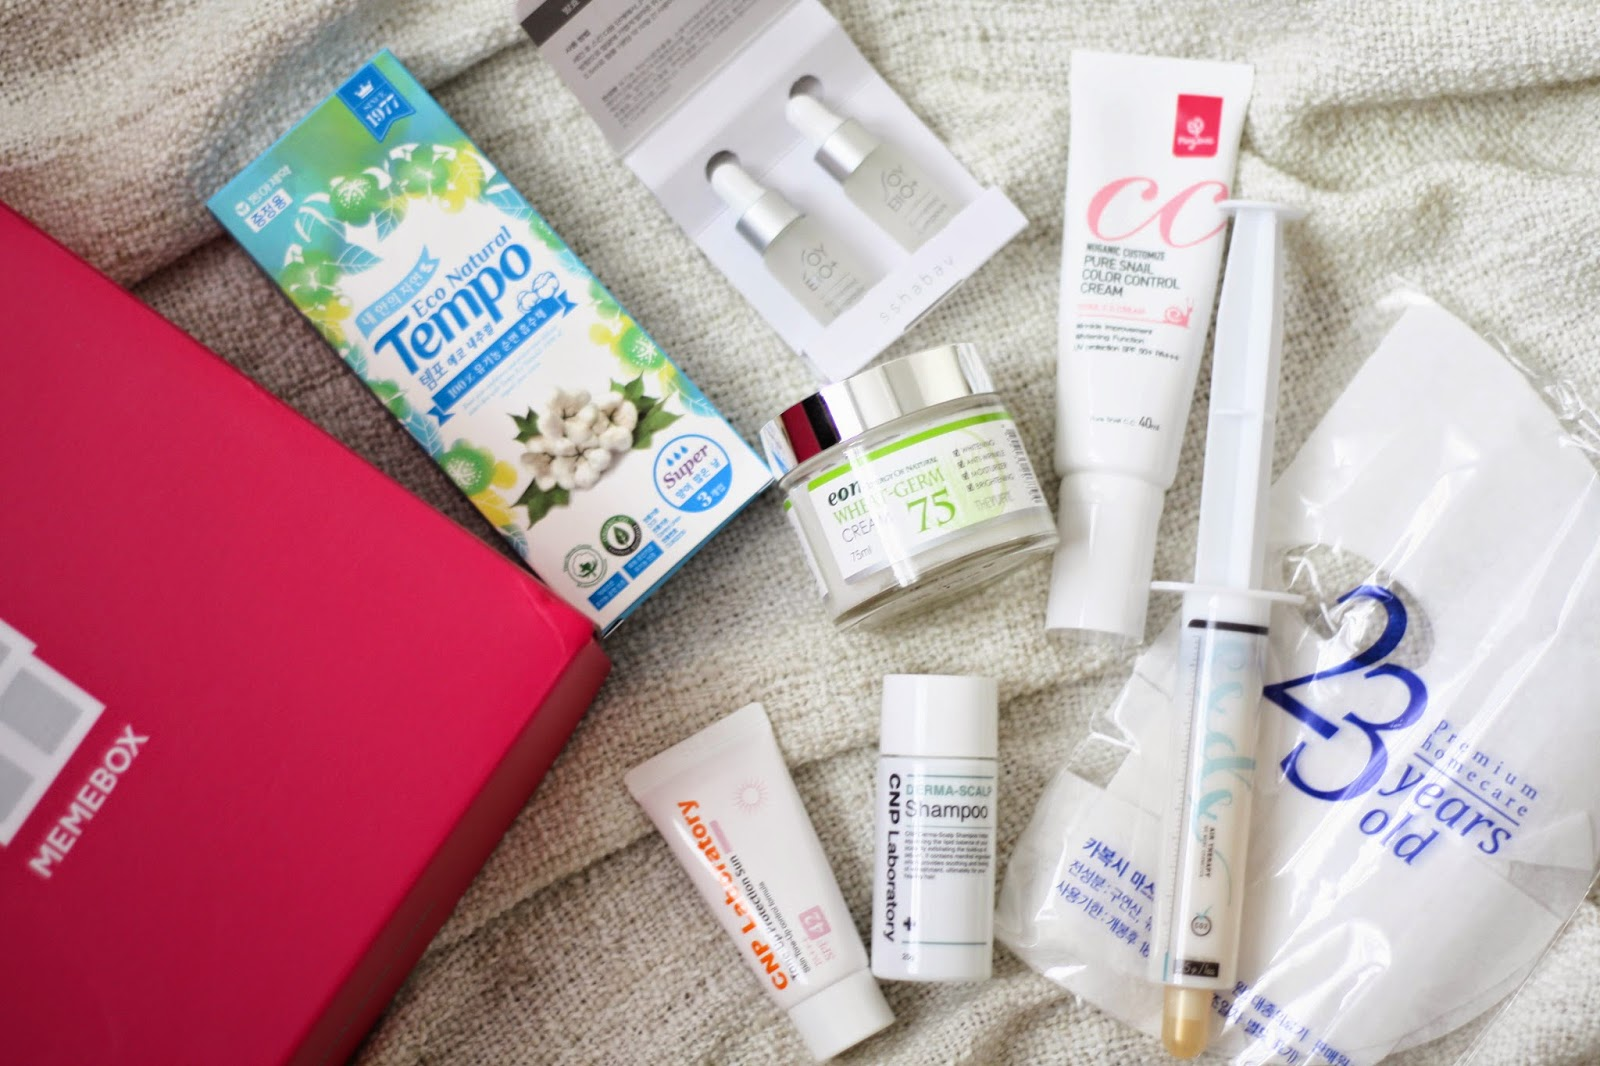 Memebox: a pack of tampons & mouldy soya beans